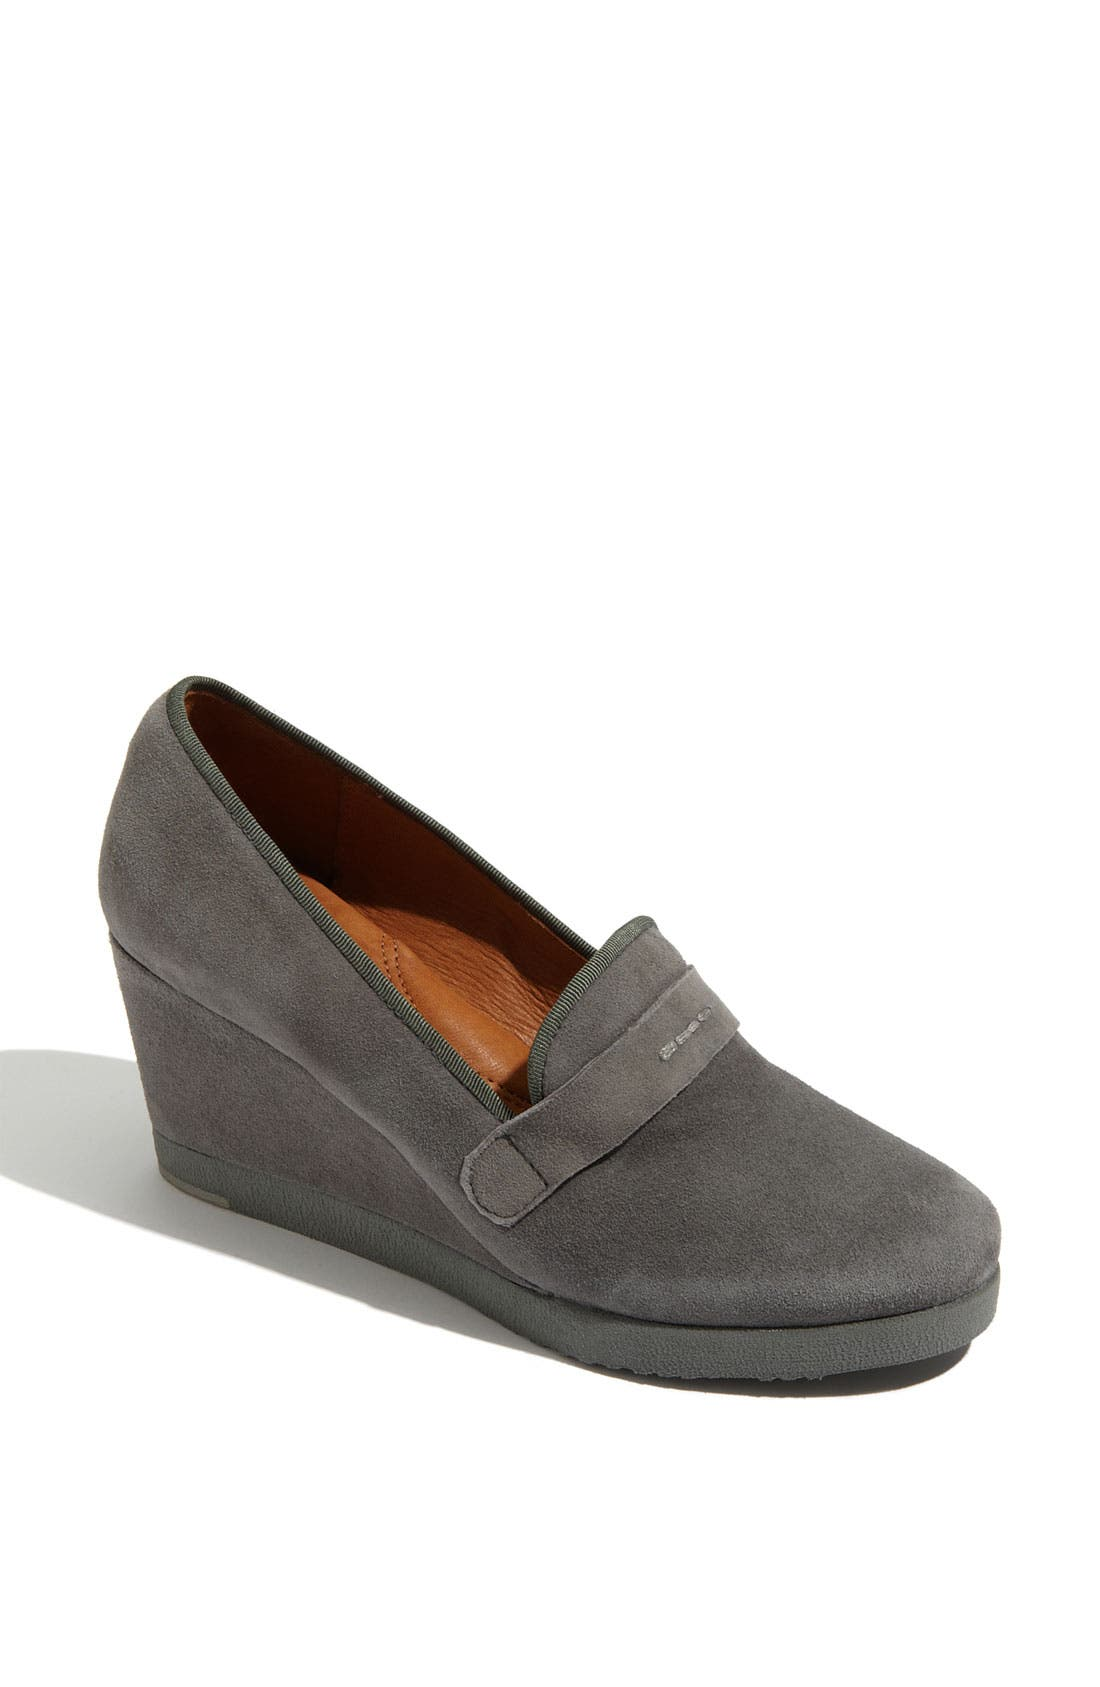 Main Image - Gentle Souls 'Up at Dawn' Loafer Pump